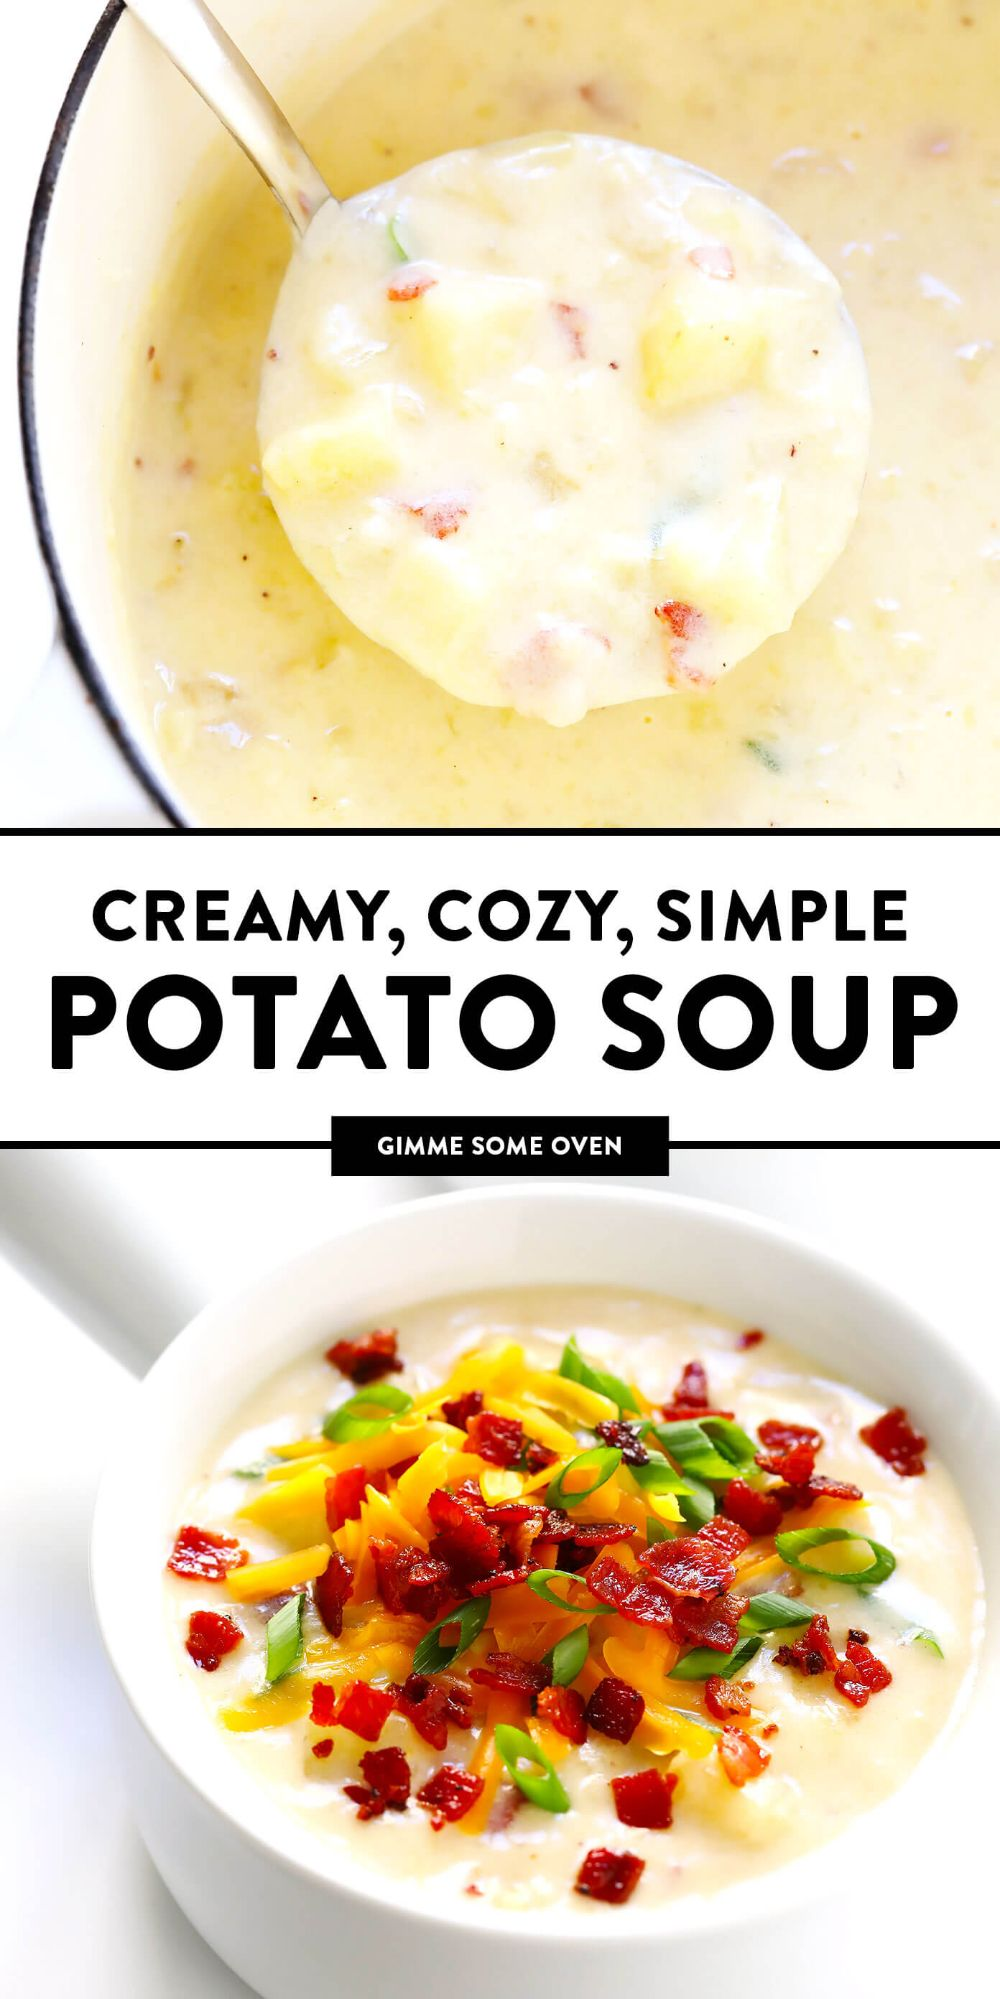 The BEST Potato Soup recipe! It's quick and easy to make, nice and creamy (with zero heavy cream), with lots of bacon (if you'd like). Total comfort food! | Gimme Some Oven #soup #potato #dinner #mealprep #recipe